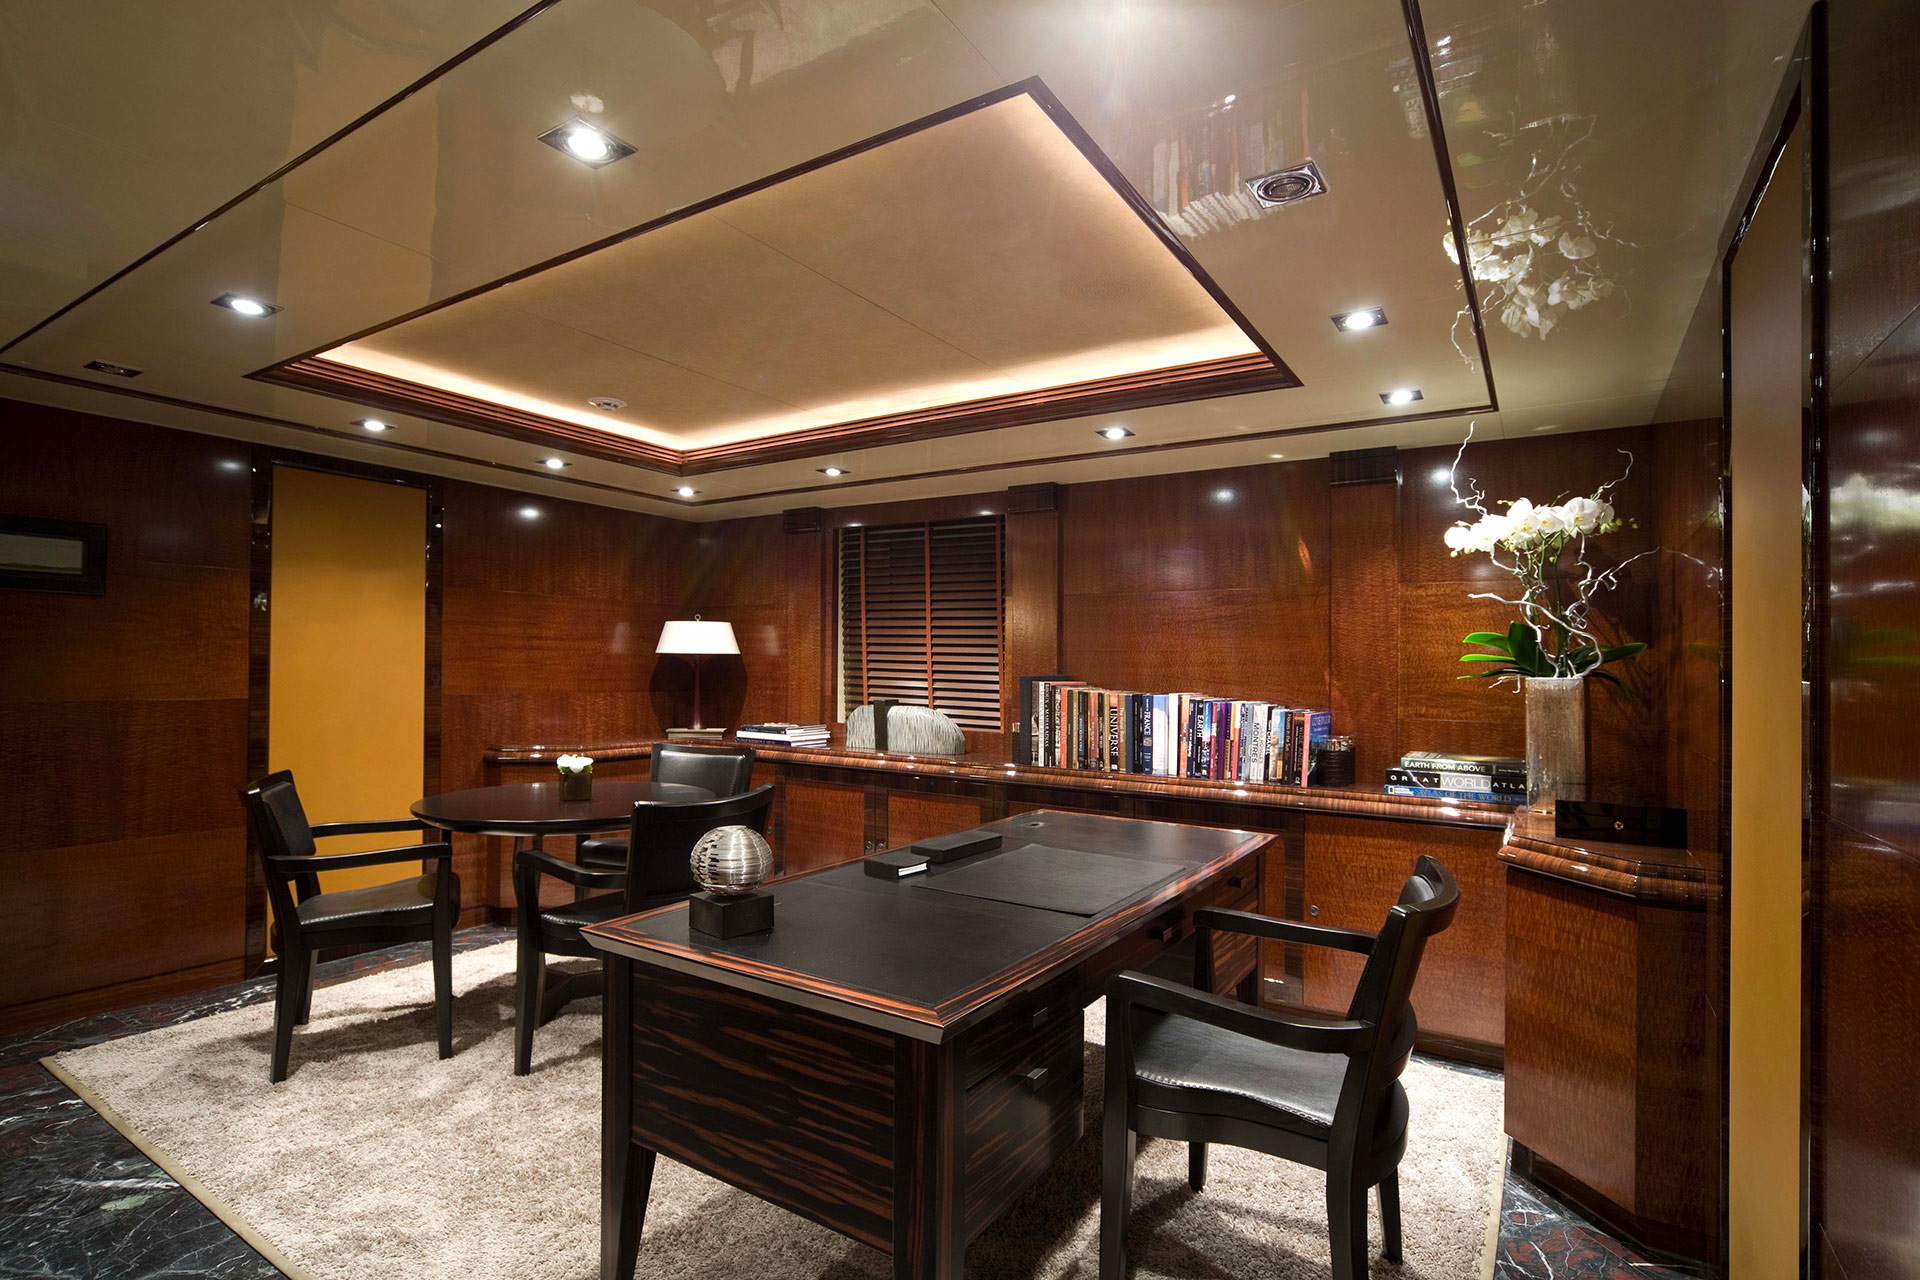 Studio in the AZTECA Yacht furnished with Promemoria | Promemoria